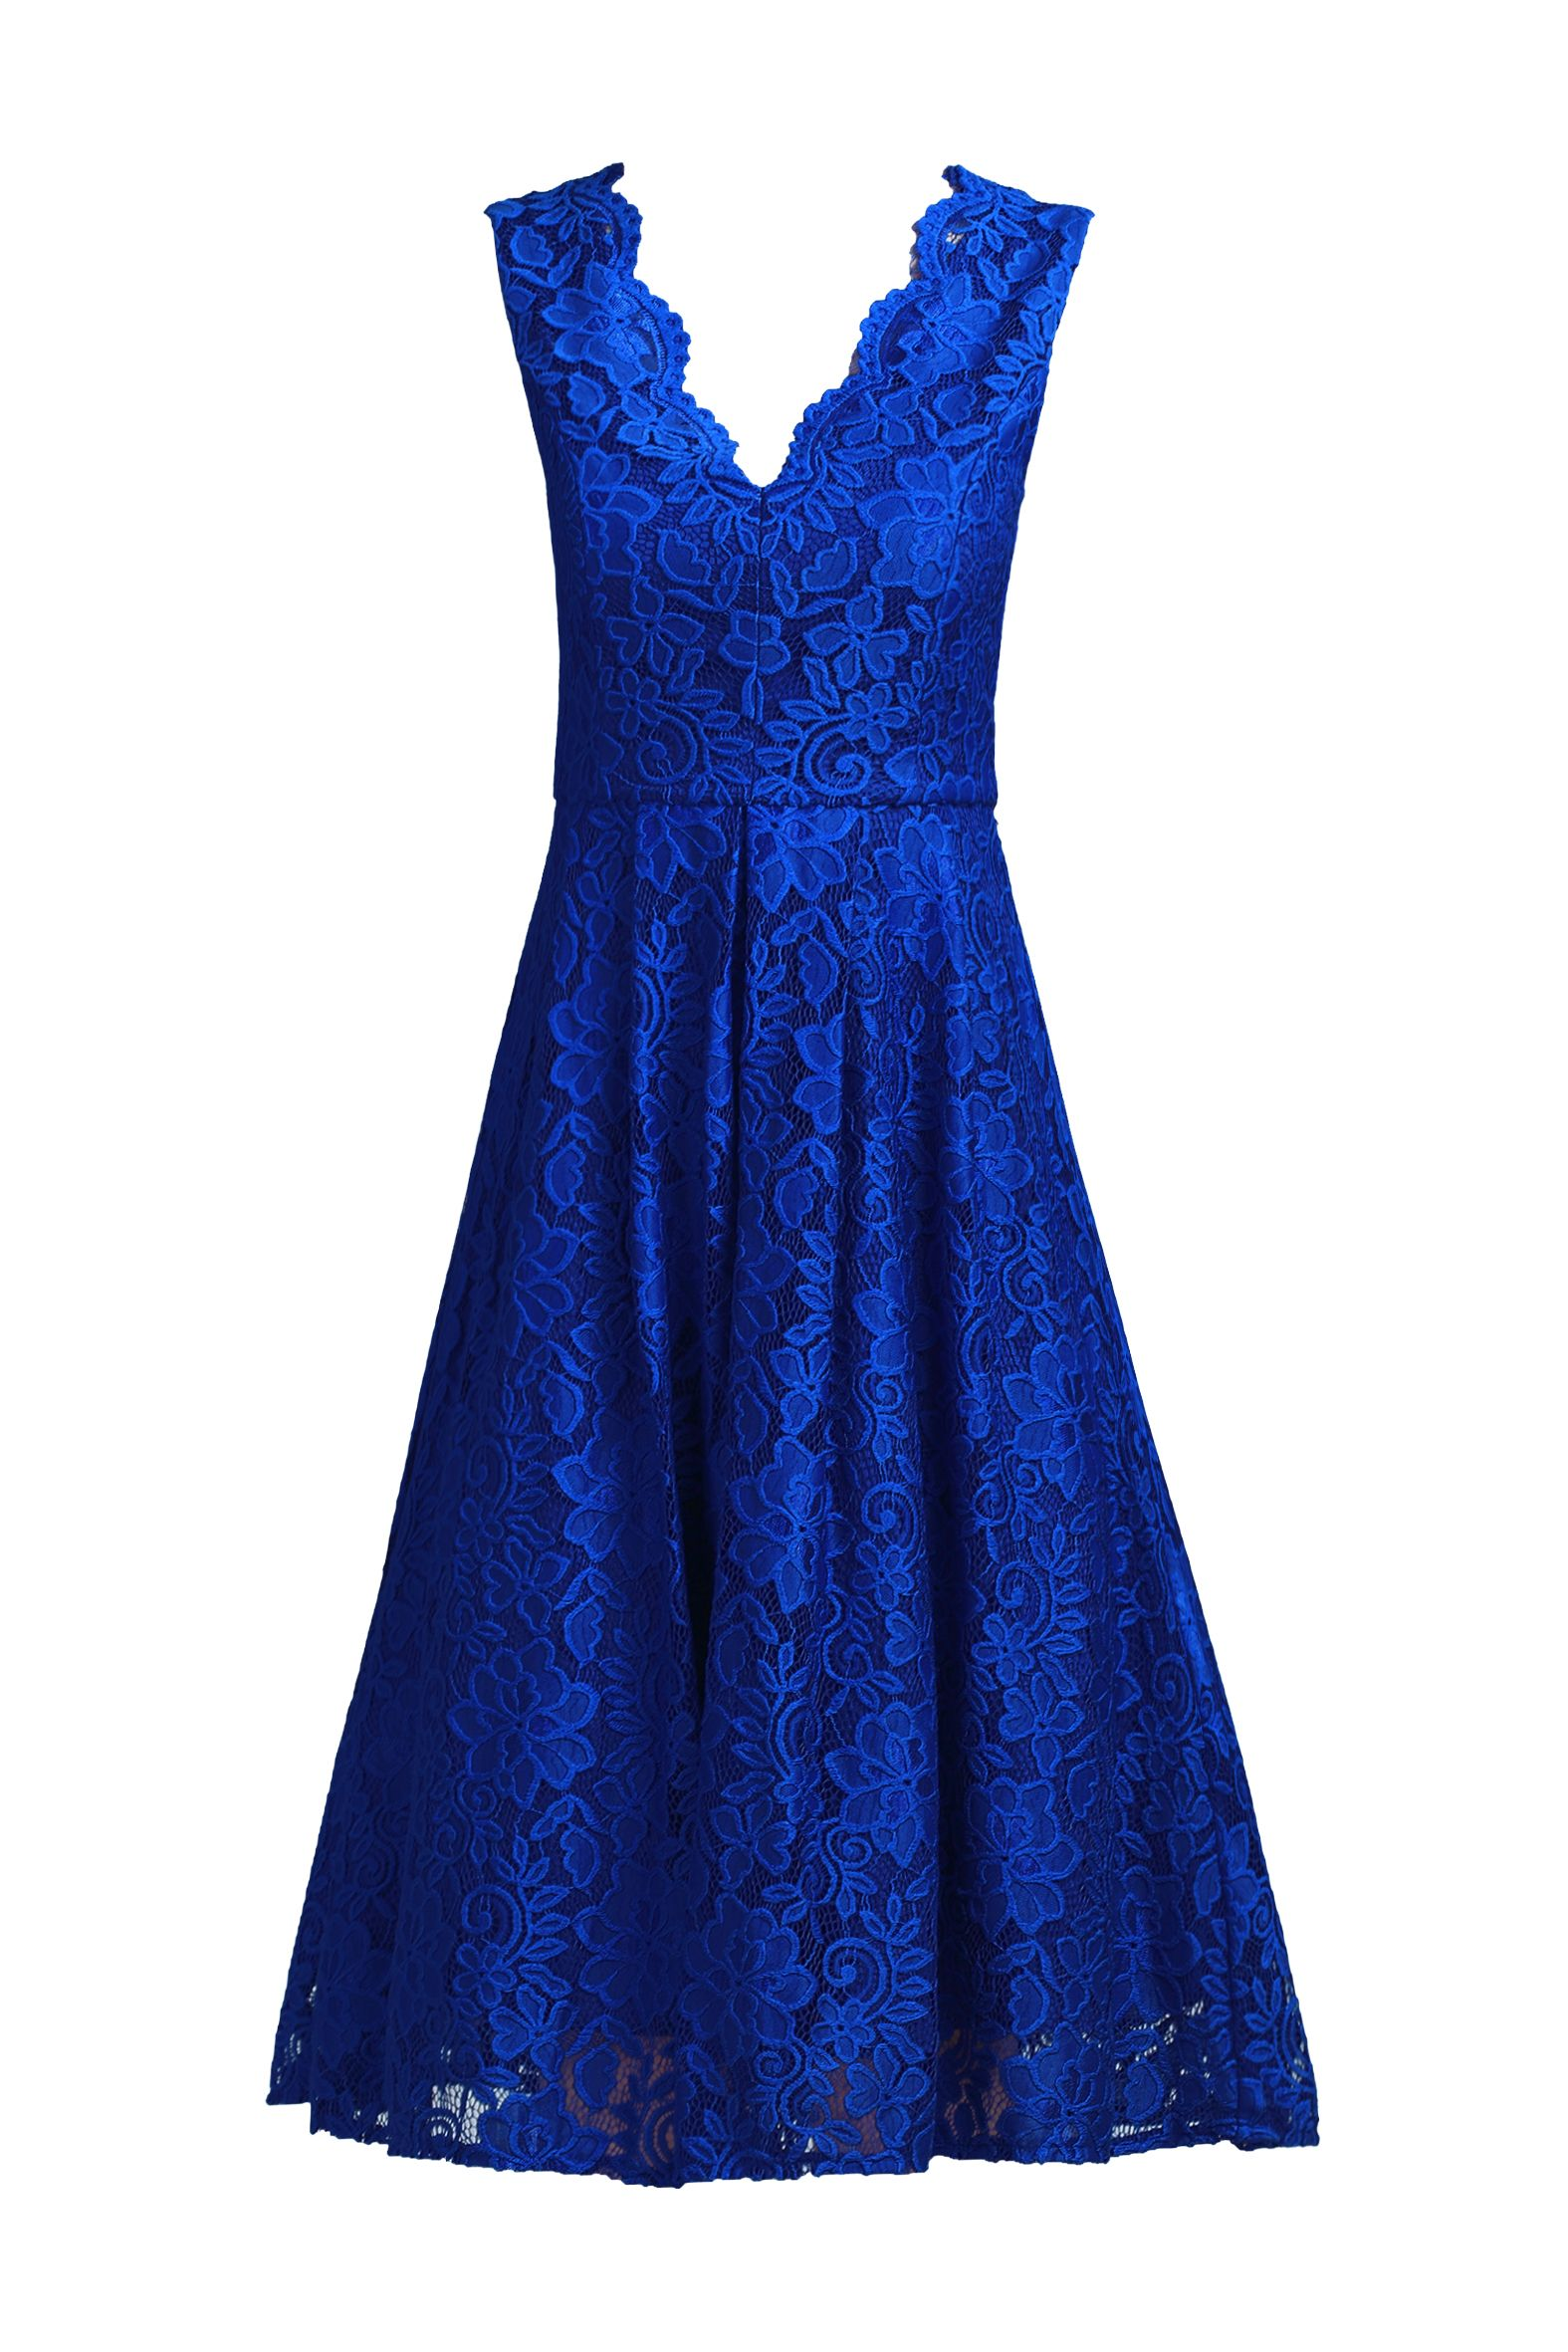 cobalt blue dress house of fraser